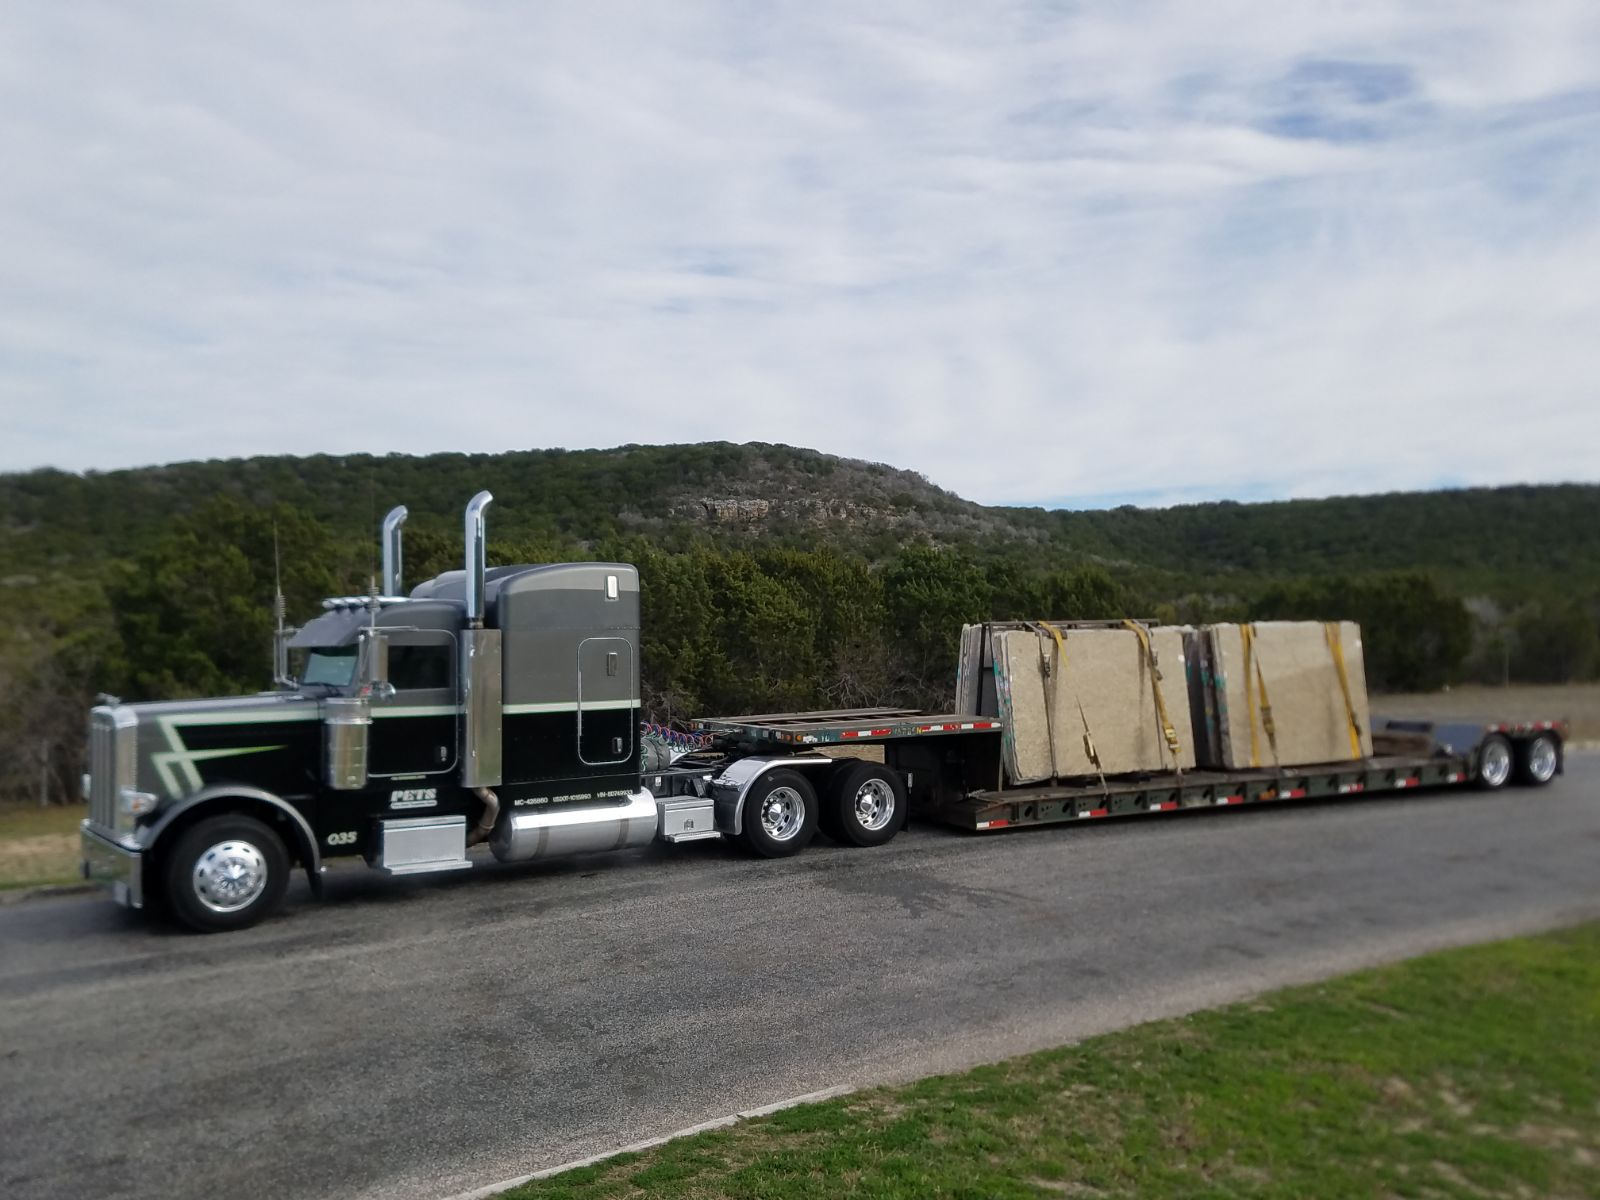 Don't have a 3 stage forklift. Let us send an ultra low trailer in order to ease the unloading process.